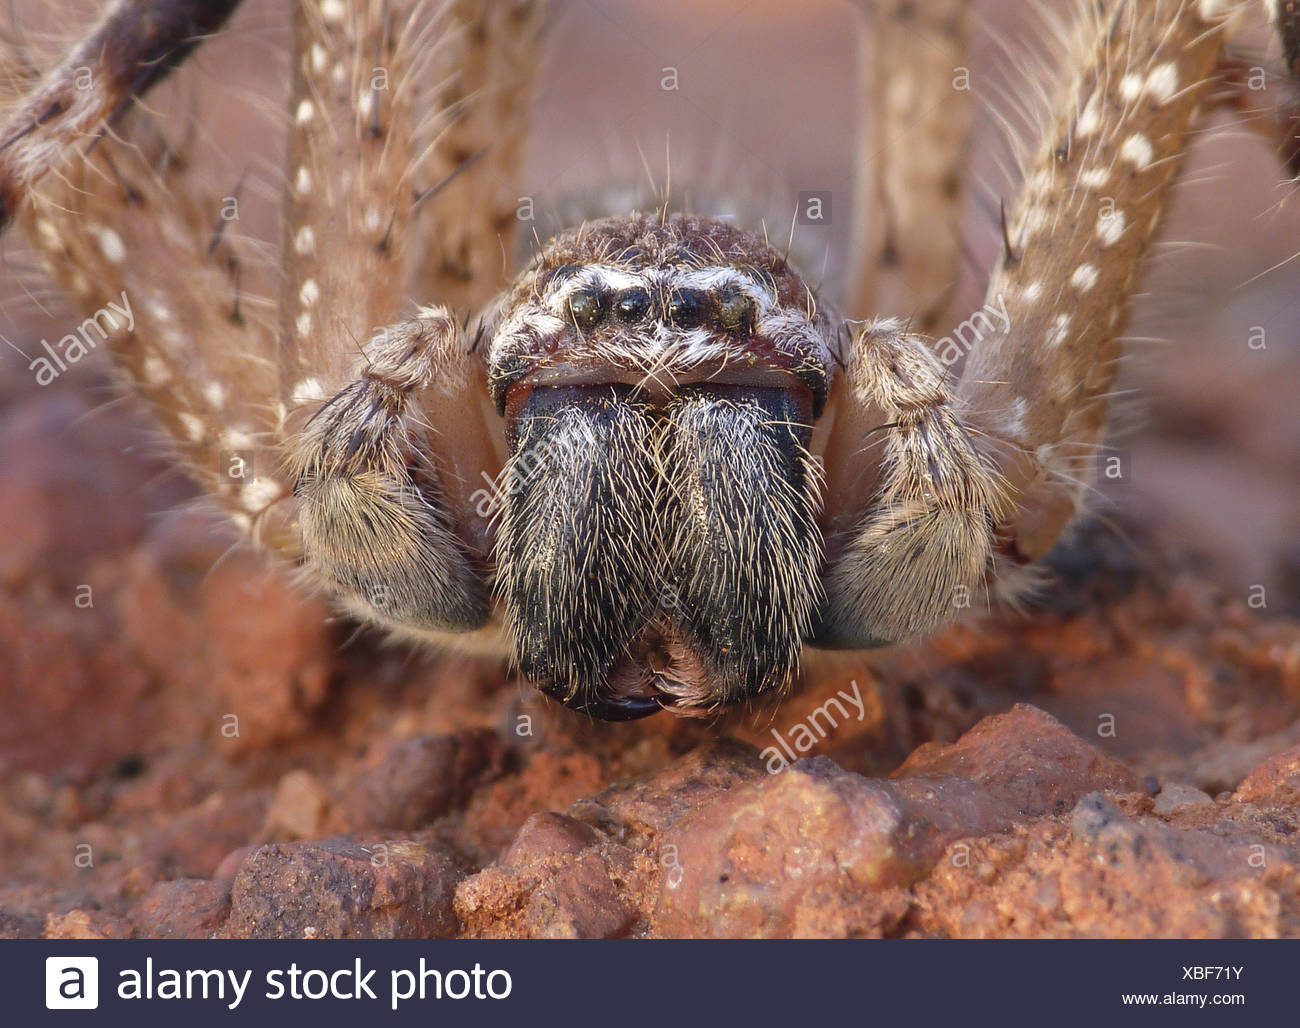 Mountain Huntsman Spider (Isopeda montana) adult, close-up